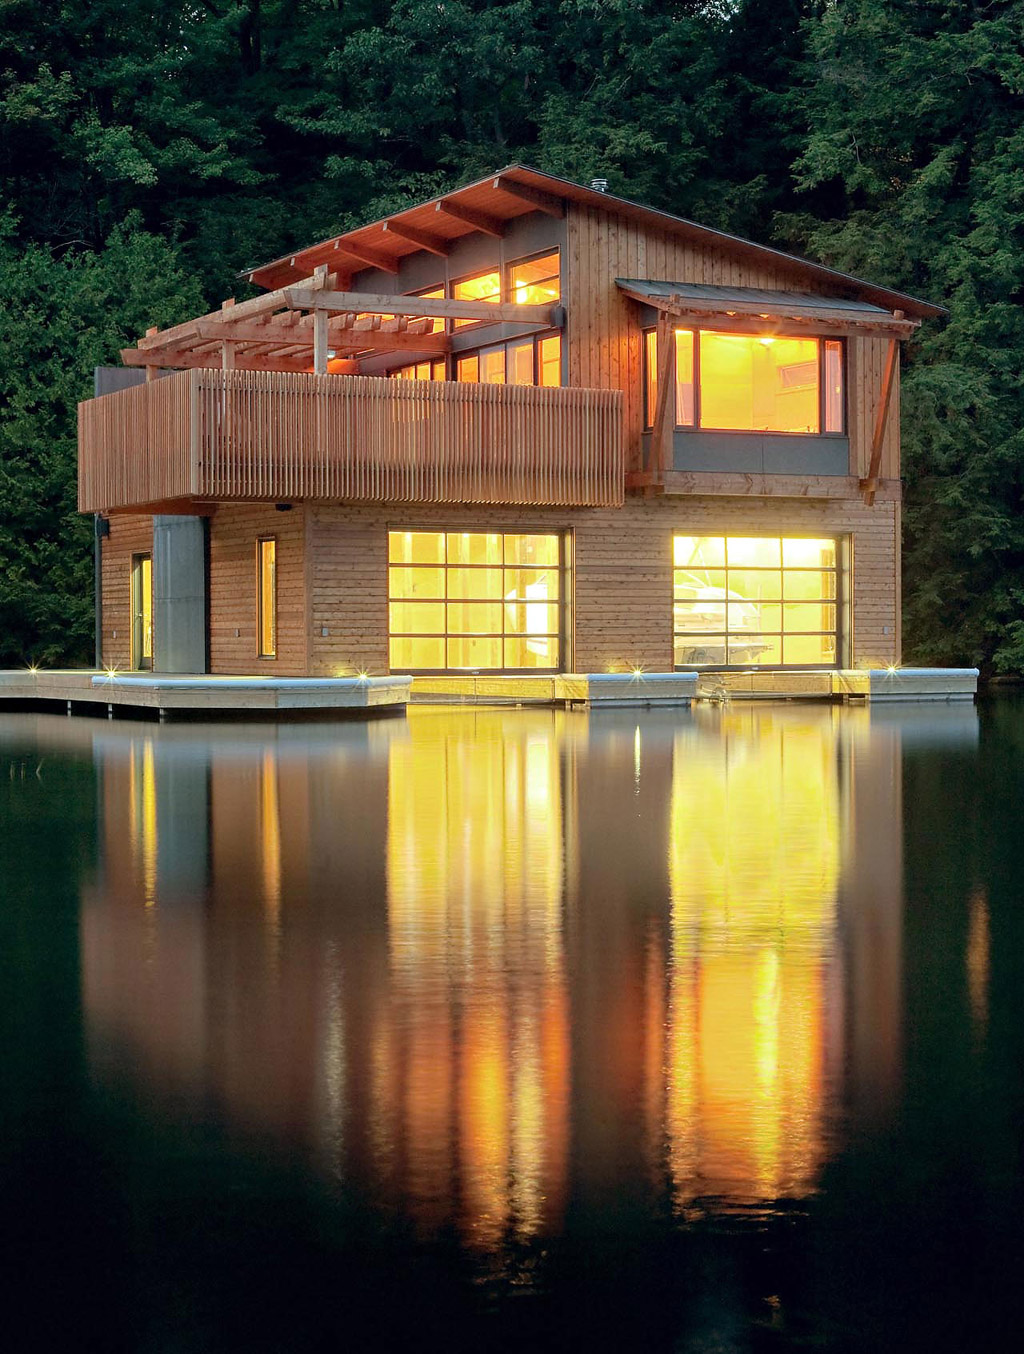 muskoka-boathouse-christopher-simmonds-architecture-7